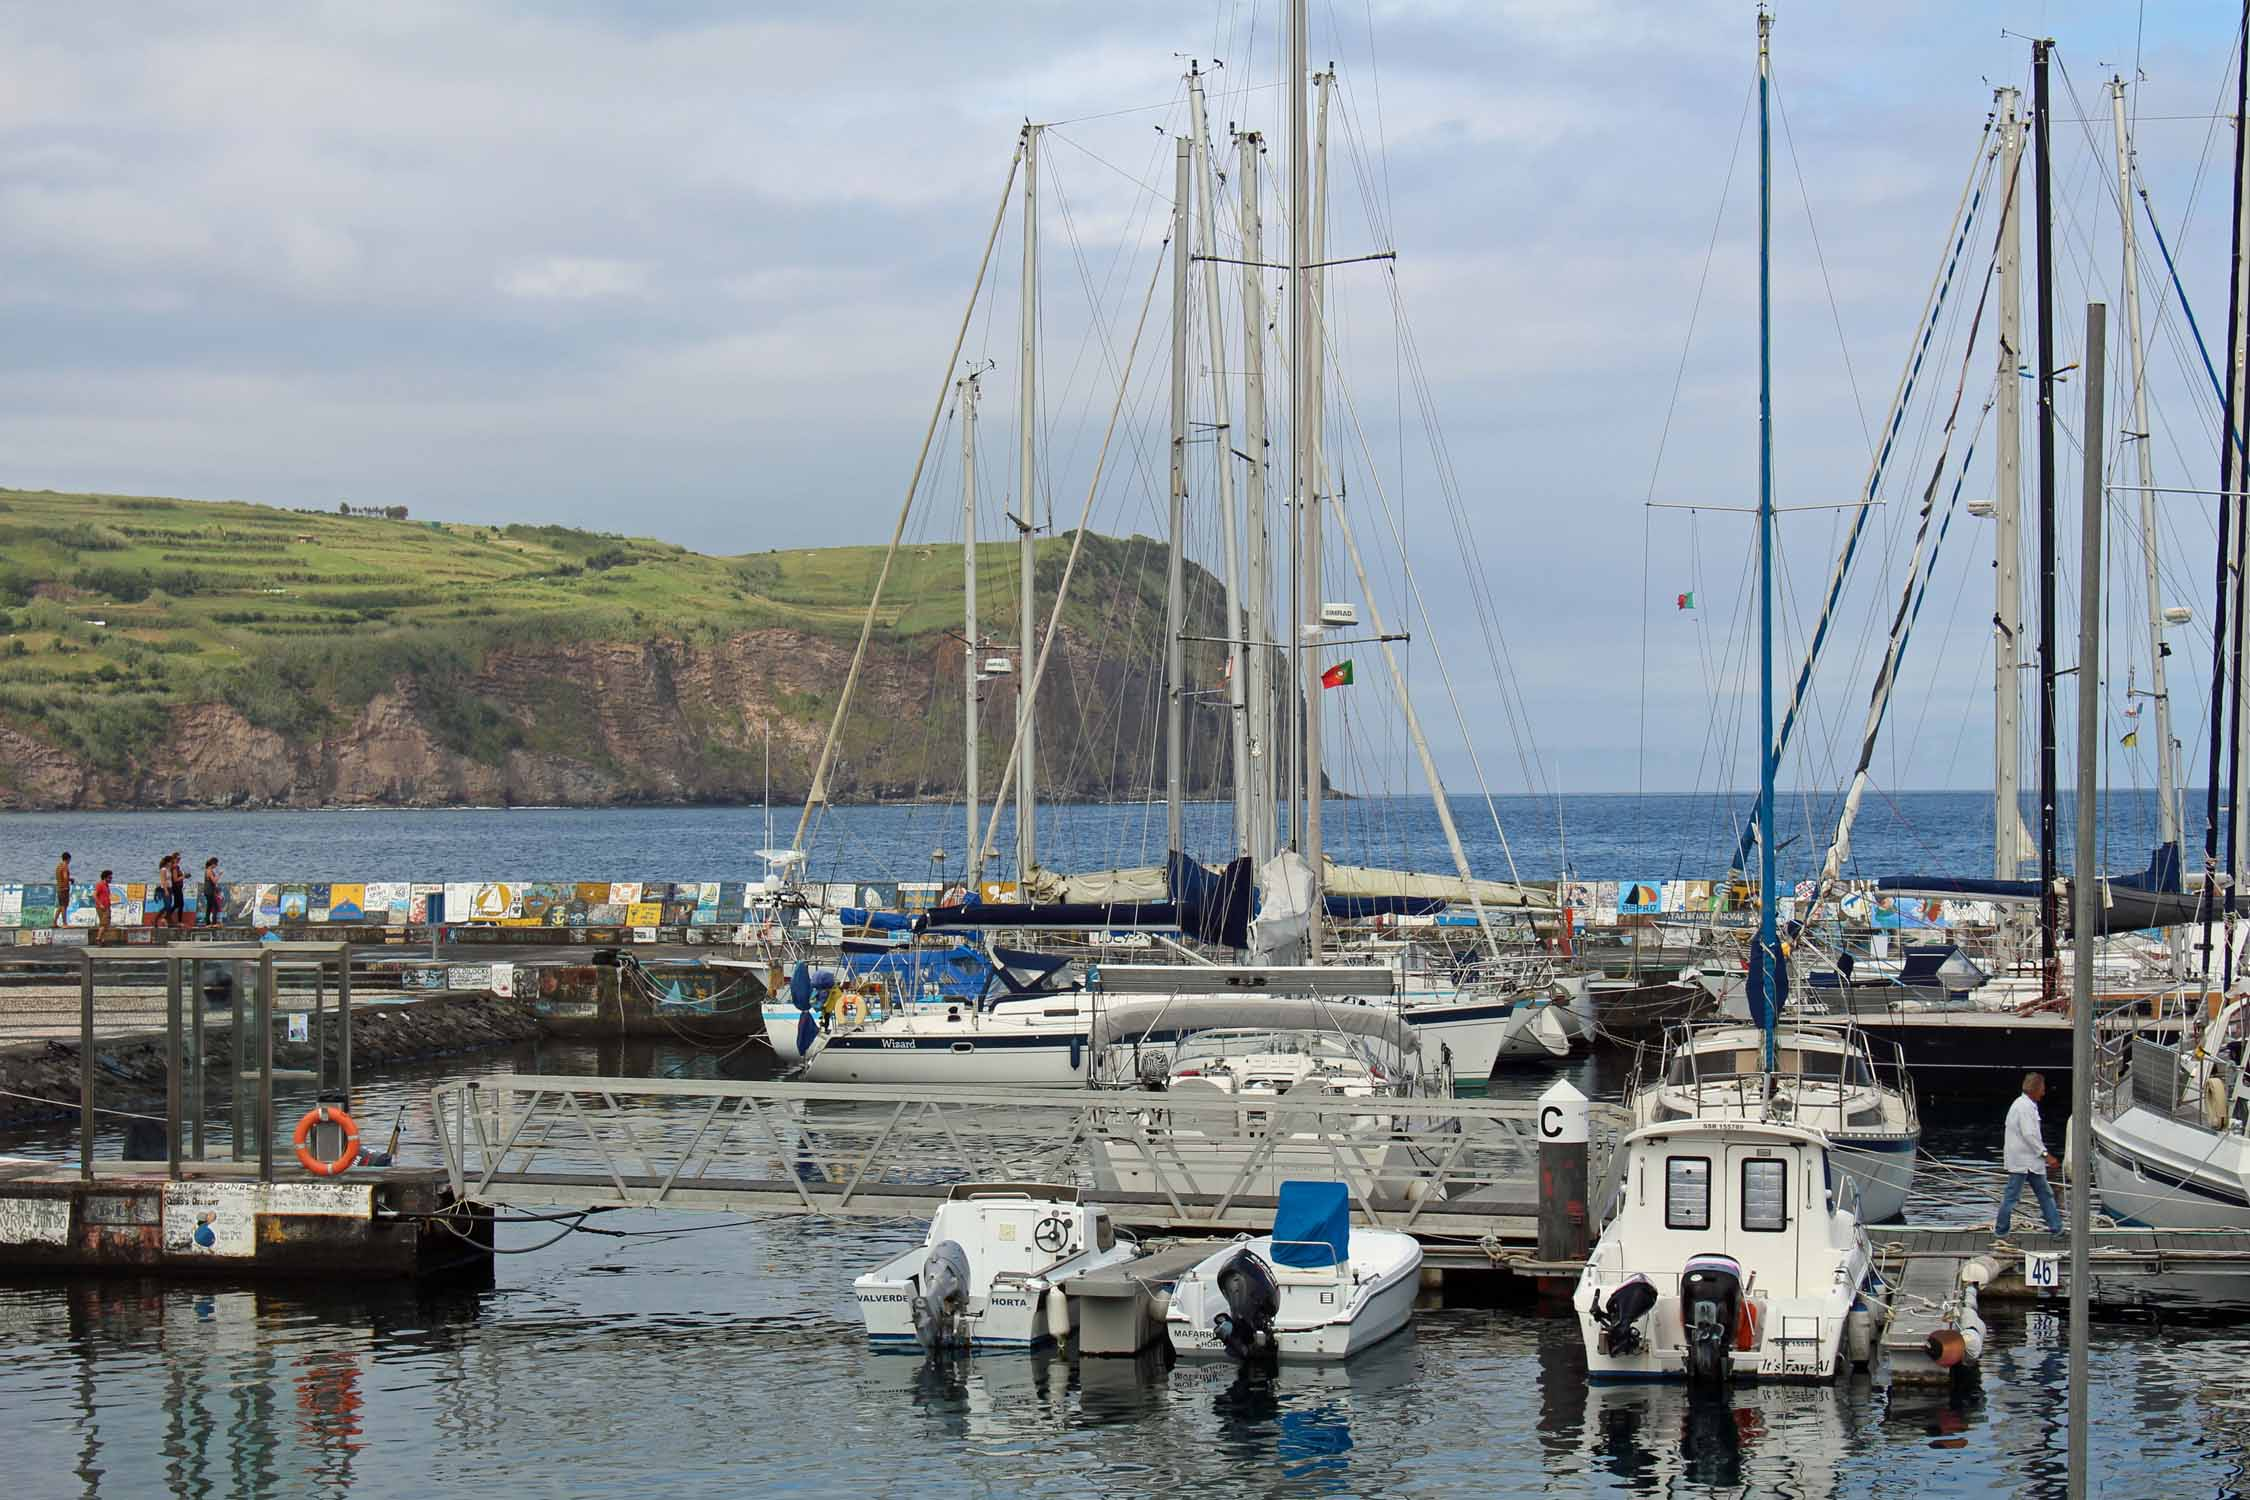 Boats on the port of Horta, Faial Island, Azores